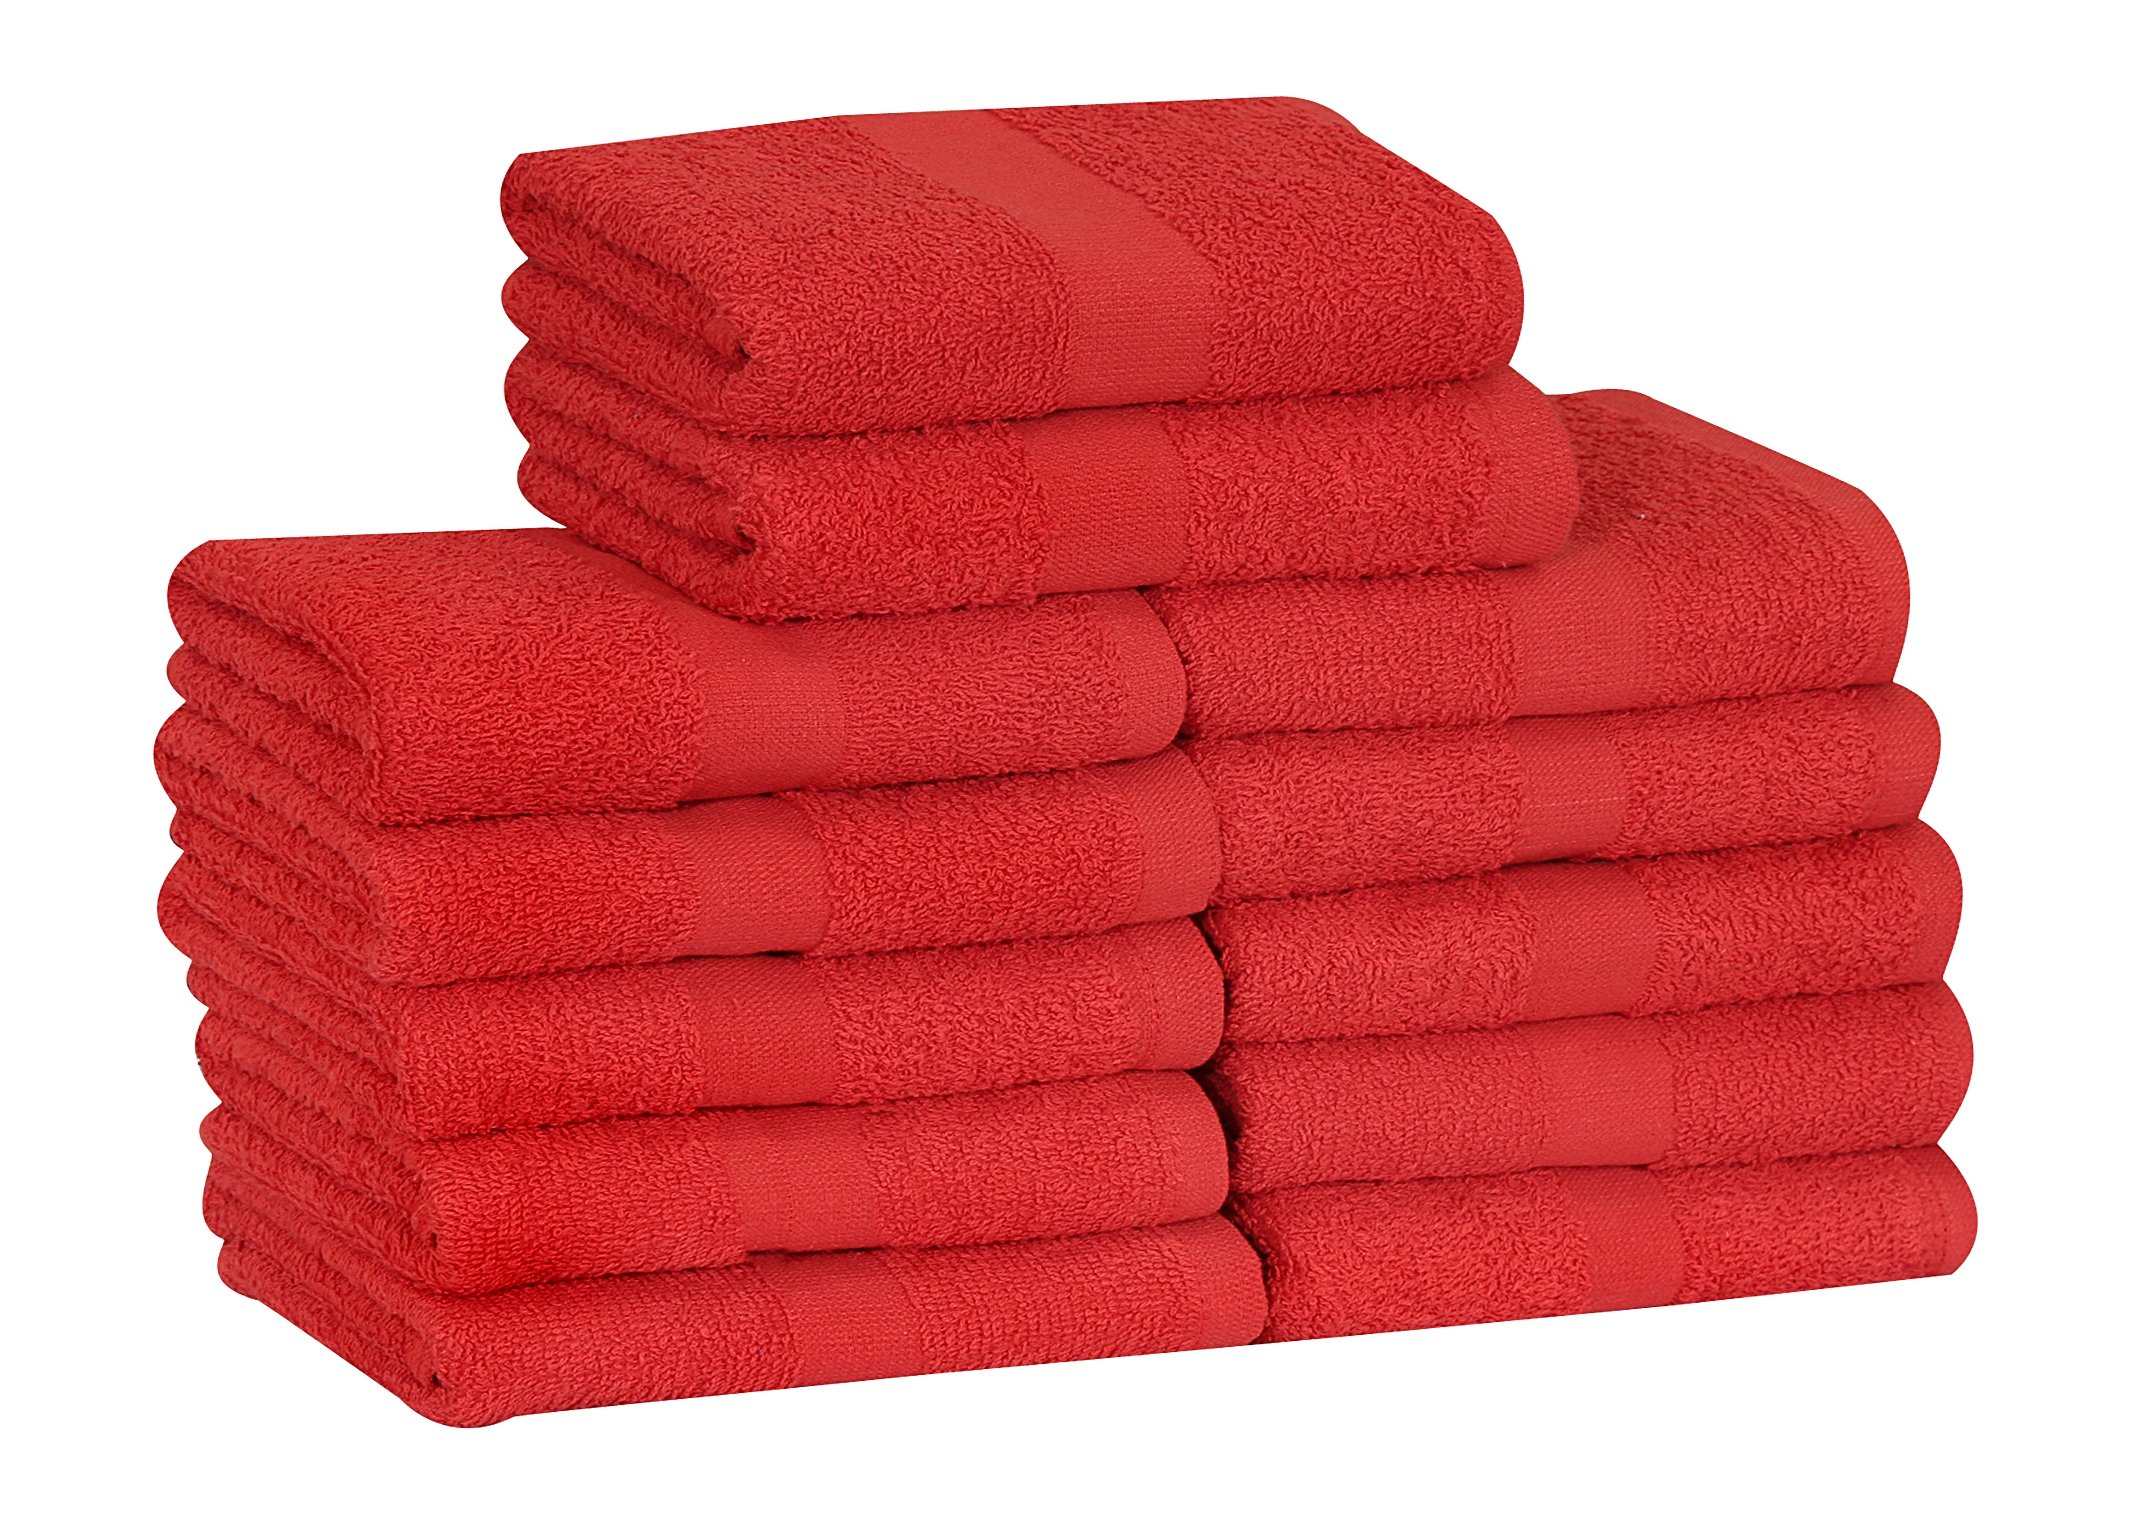 GOLD TEXTILES Cotton Salon Towels (12-Pack,Red,16x27 inches) - Soft Absorbent Quick Dry Gym-Salon-Spa Hand Towel (Red)